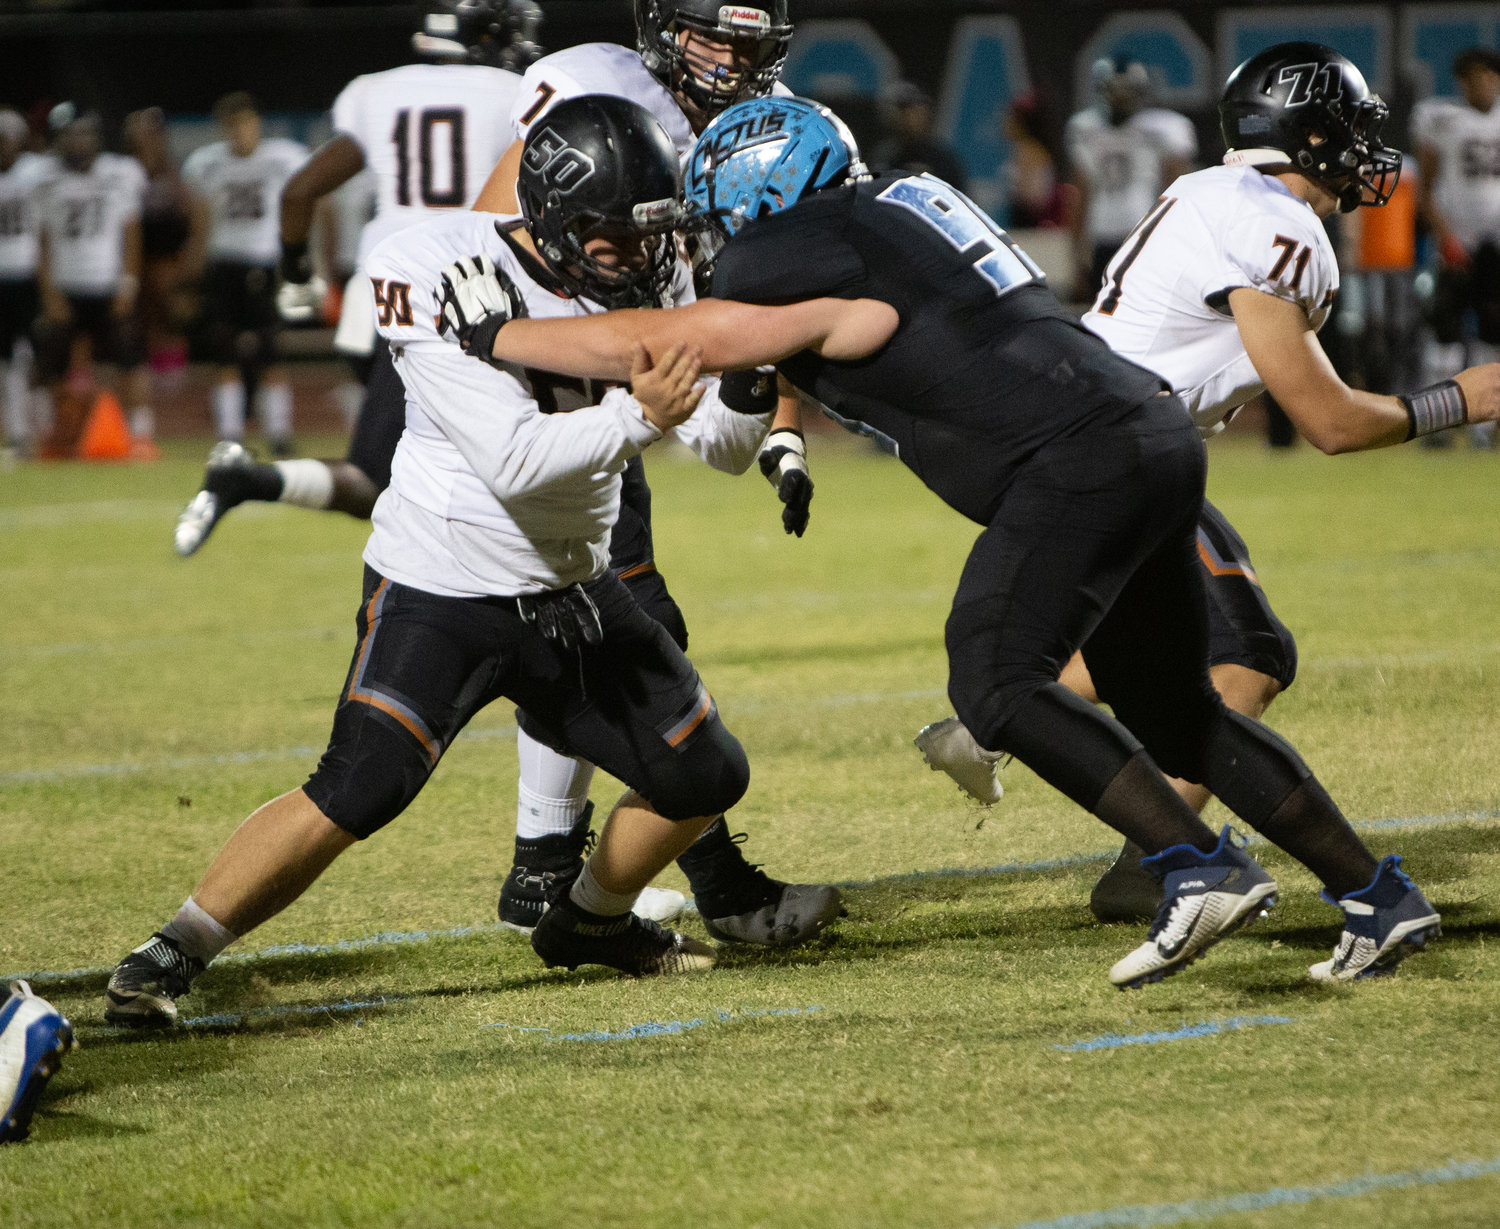 Cactus junior defensive tackle Ethan Price, right, locks up with Desert Edge senior center Braxton Matteson during an Oct. 11 game at Cactus High School in Glendale. Price is in the midst of a COVID-19 altered recruiting process.